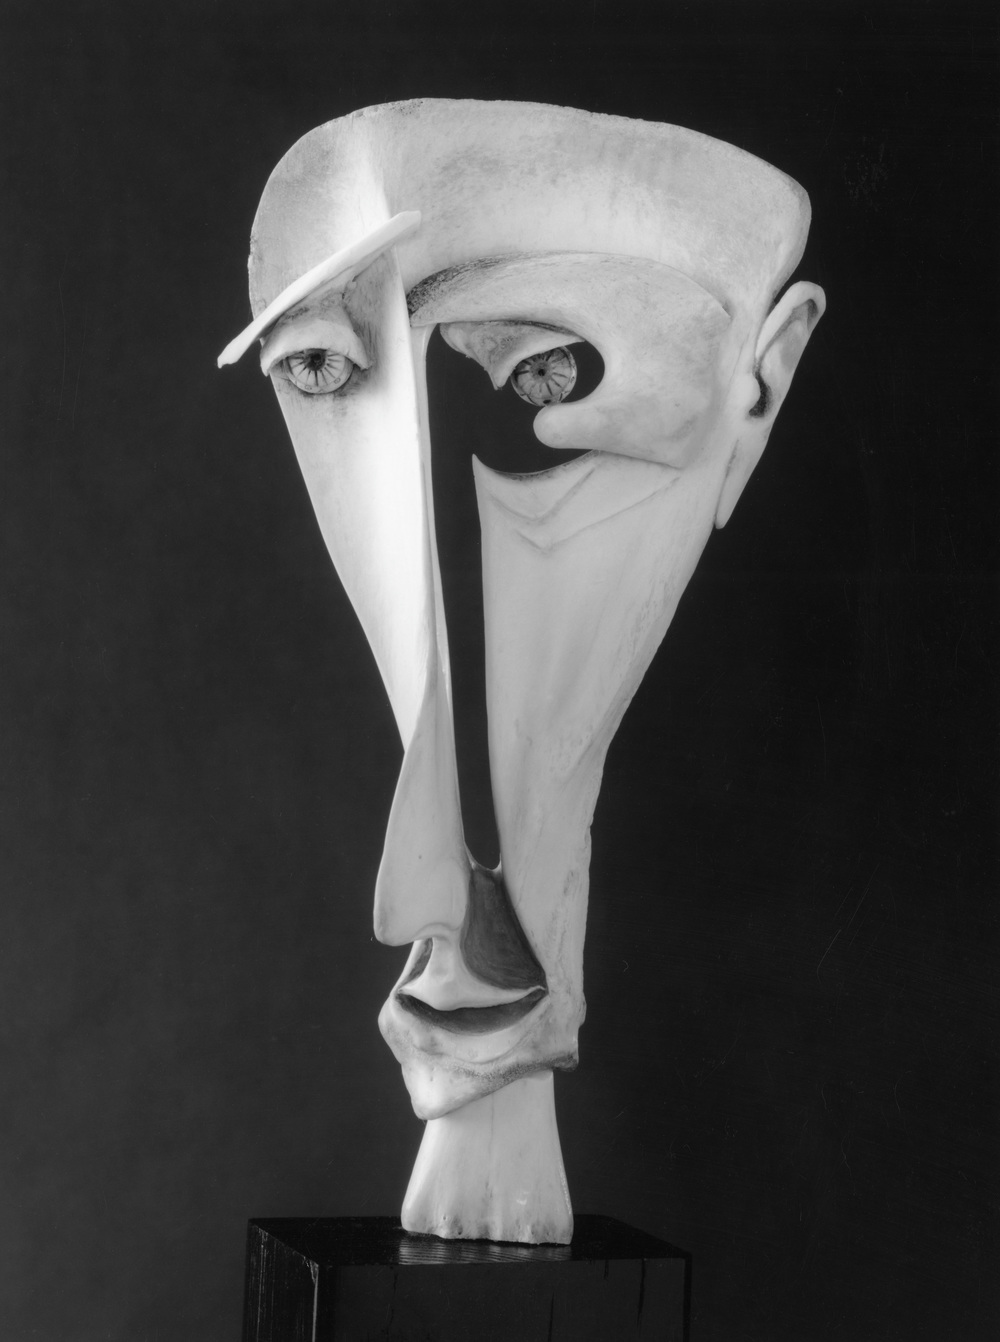 Face - Bone Sculpture by Jerry Hardin